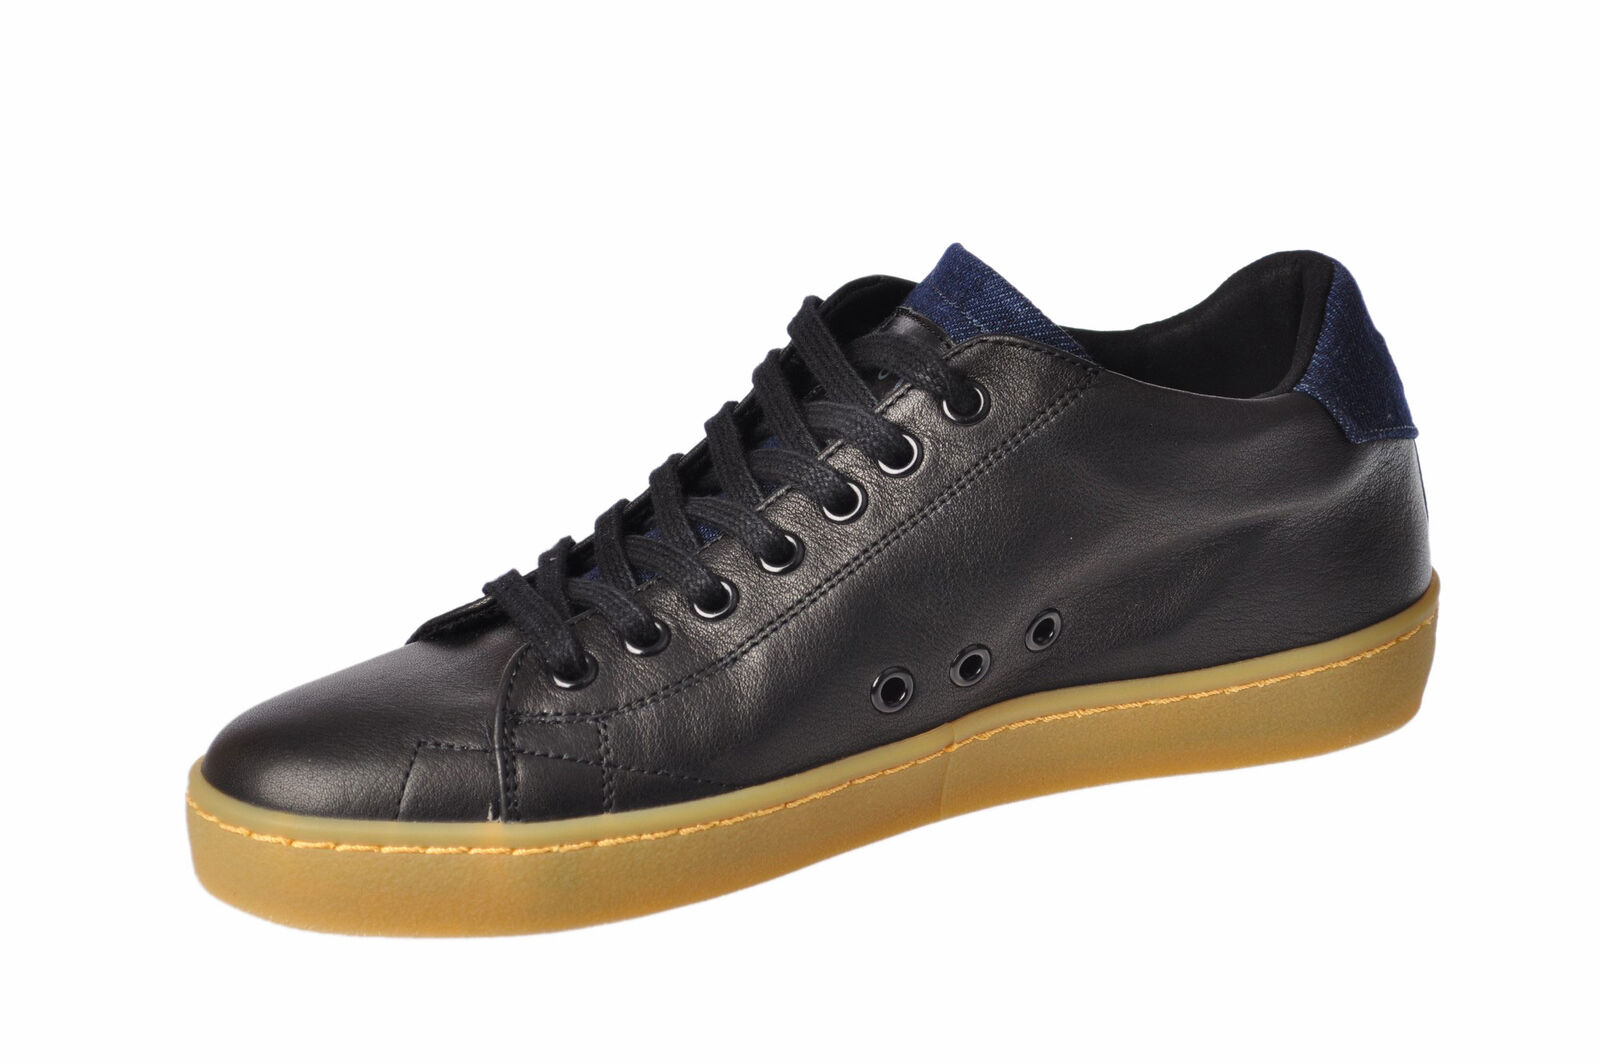 Scarpe casual da uomo  Leather - CROWN-Scarpe-Male-Nero - Leather 2584627N174501 db29c8